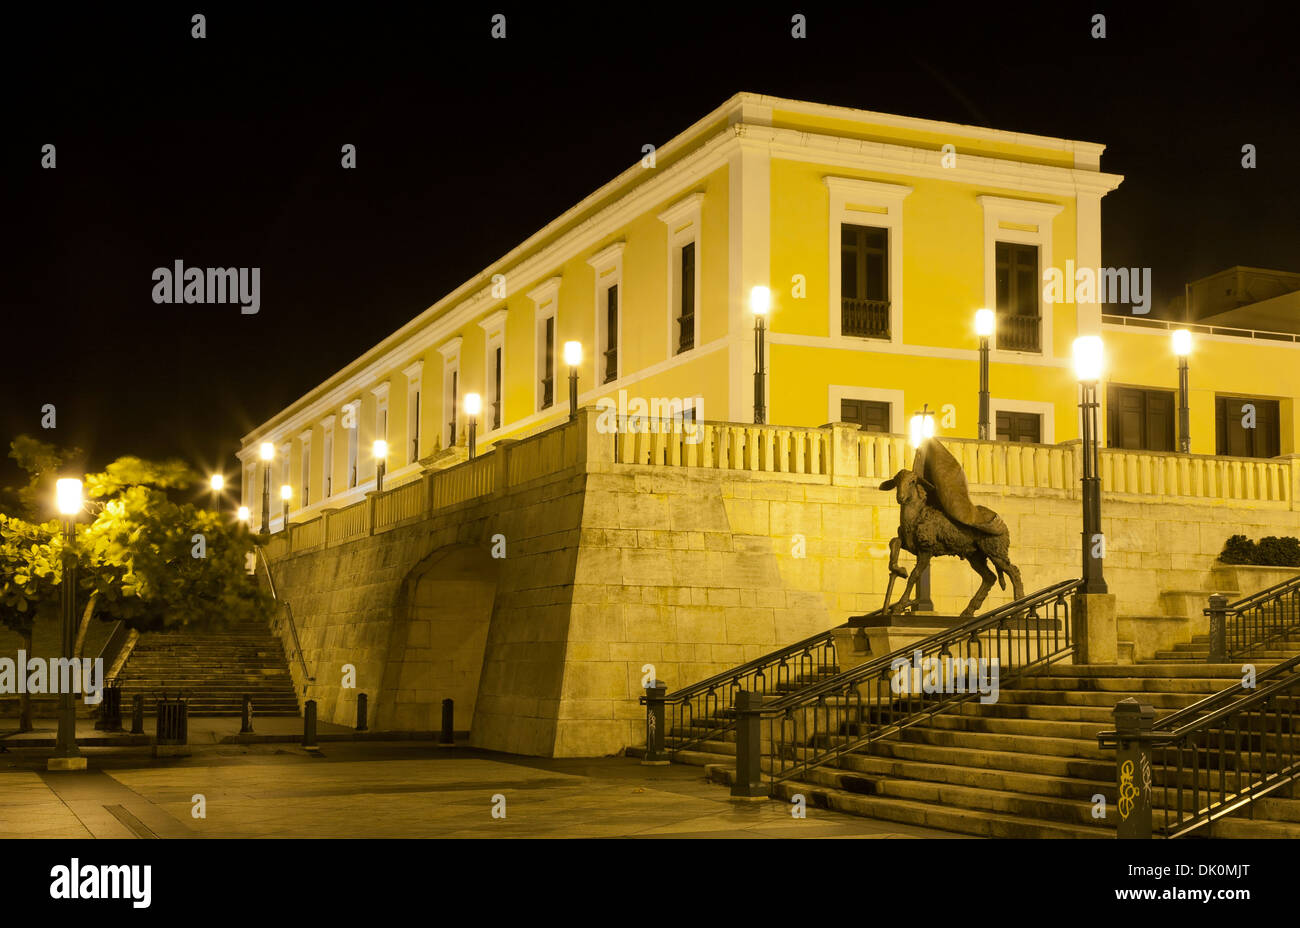 Institute of Puerto Rican Culture, Old San Juan, Puerto Rico - Stock Image